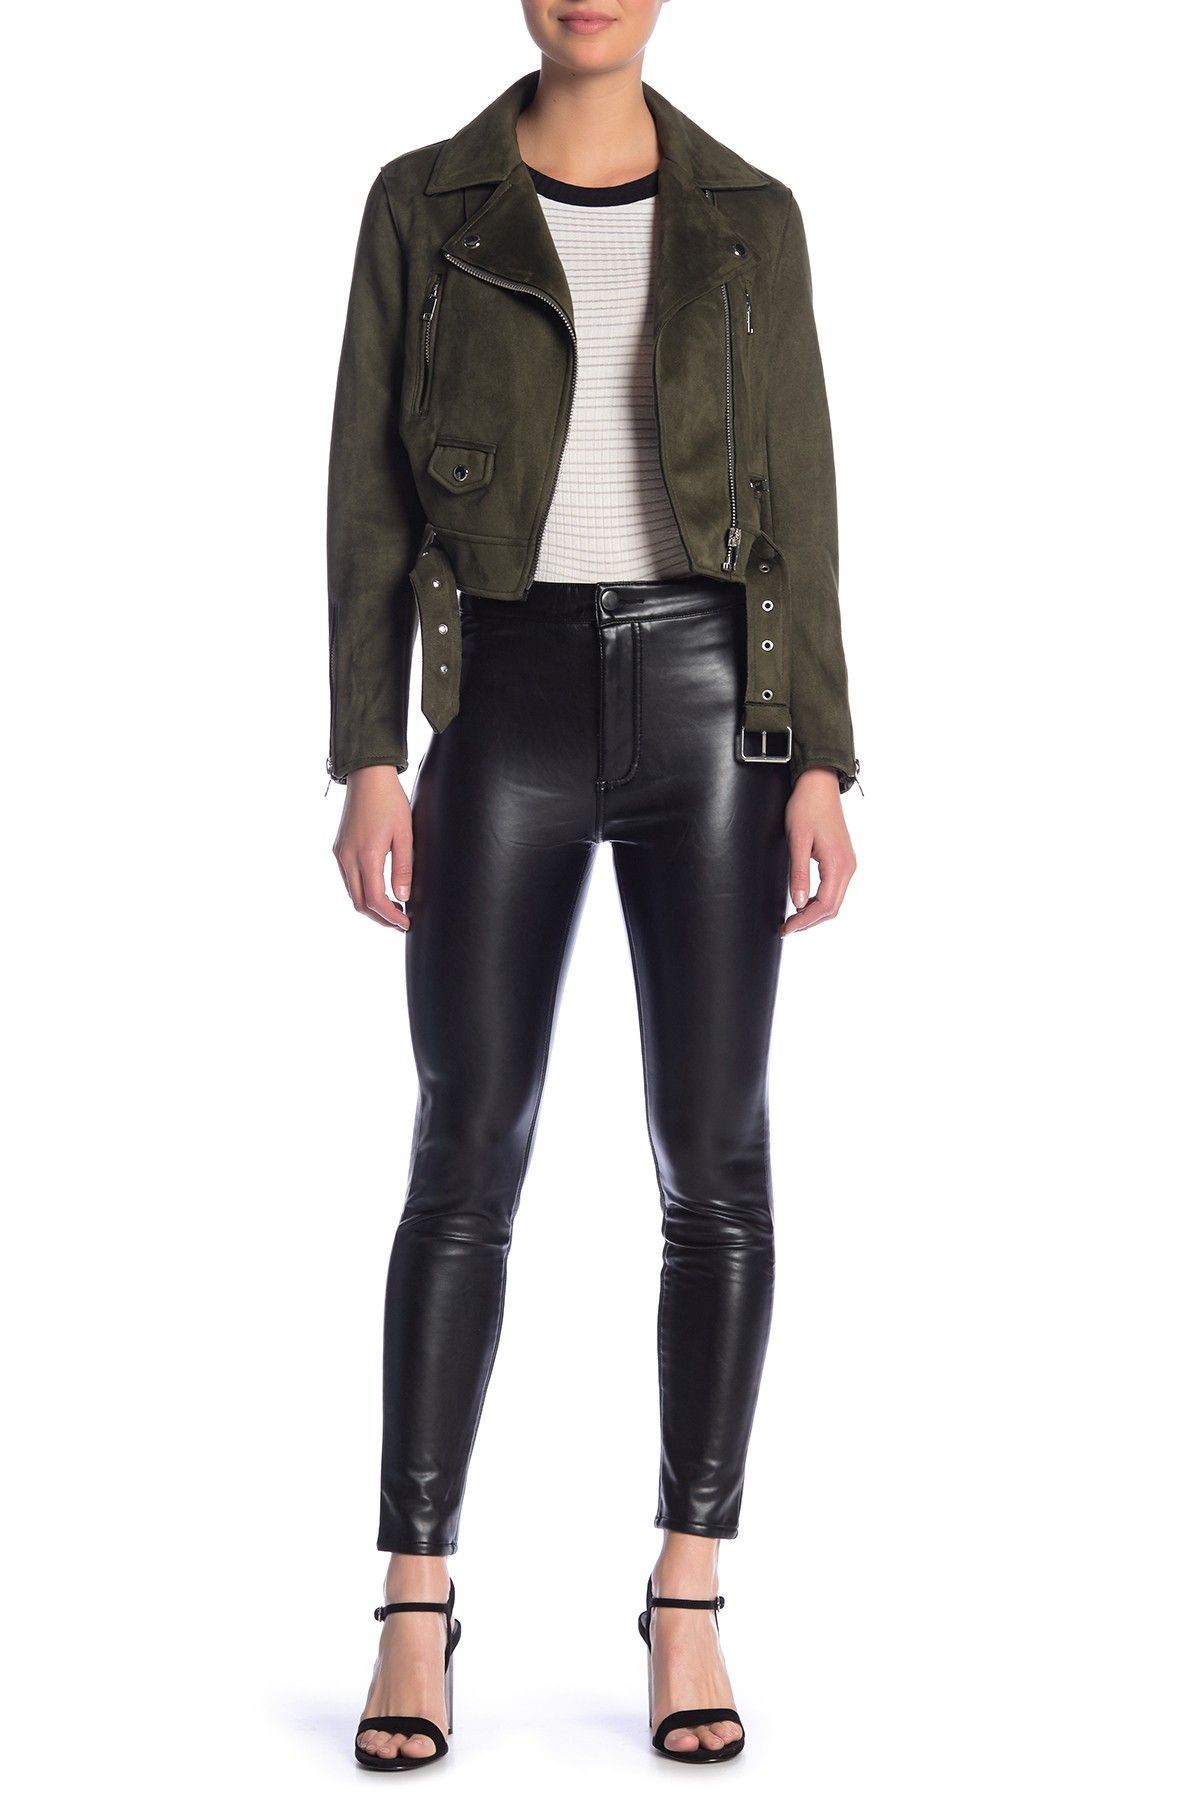 35b80a20a1 ASHLEY MASON | High Rise Faux Leather Pants in 2019 | Clothing ...